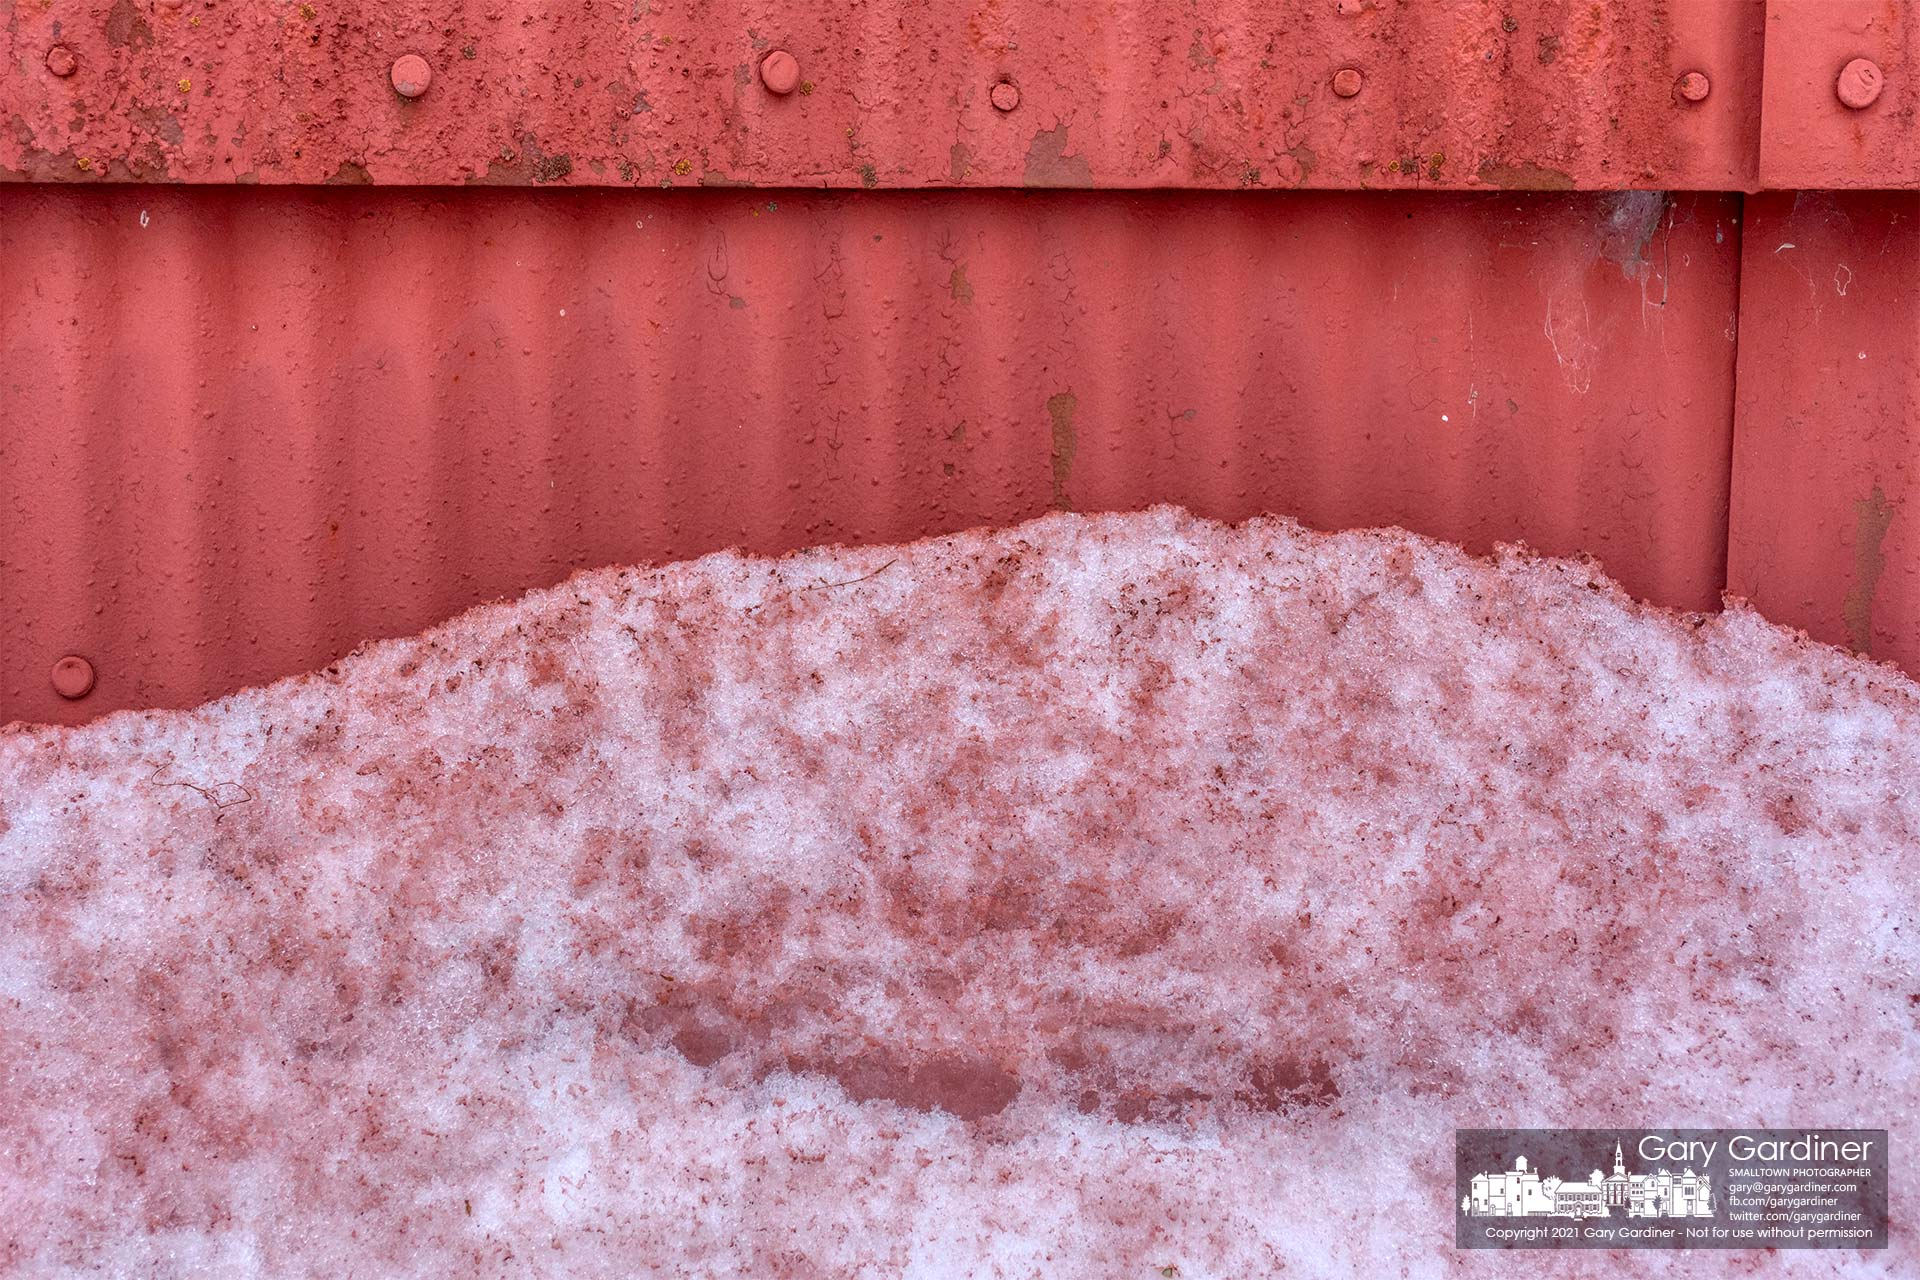 Banks of snow surround the barn on the Braun Farm are colored red where paint from the building's roof flaked off after ice and snow from the recent storms weathered the old paint. My Final Photo for Feb. 22, 2021.